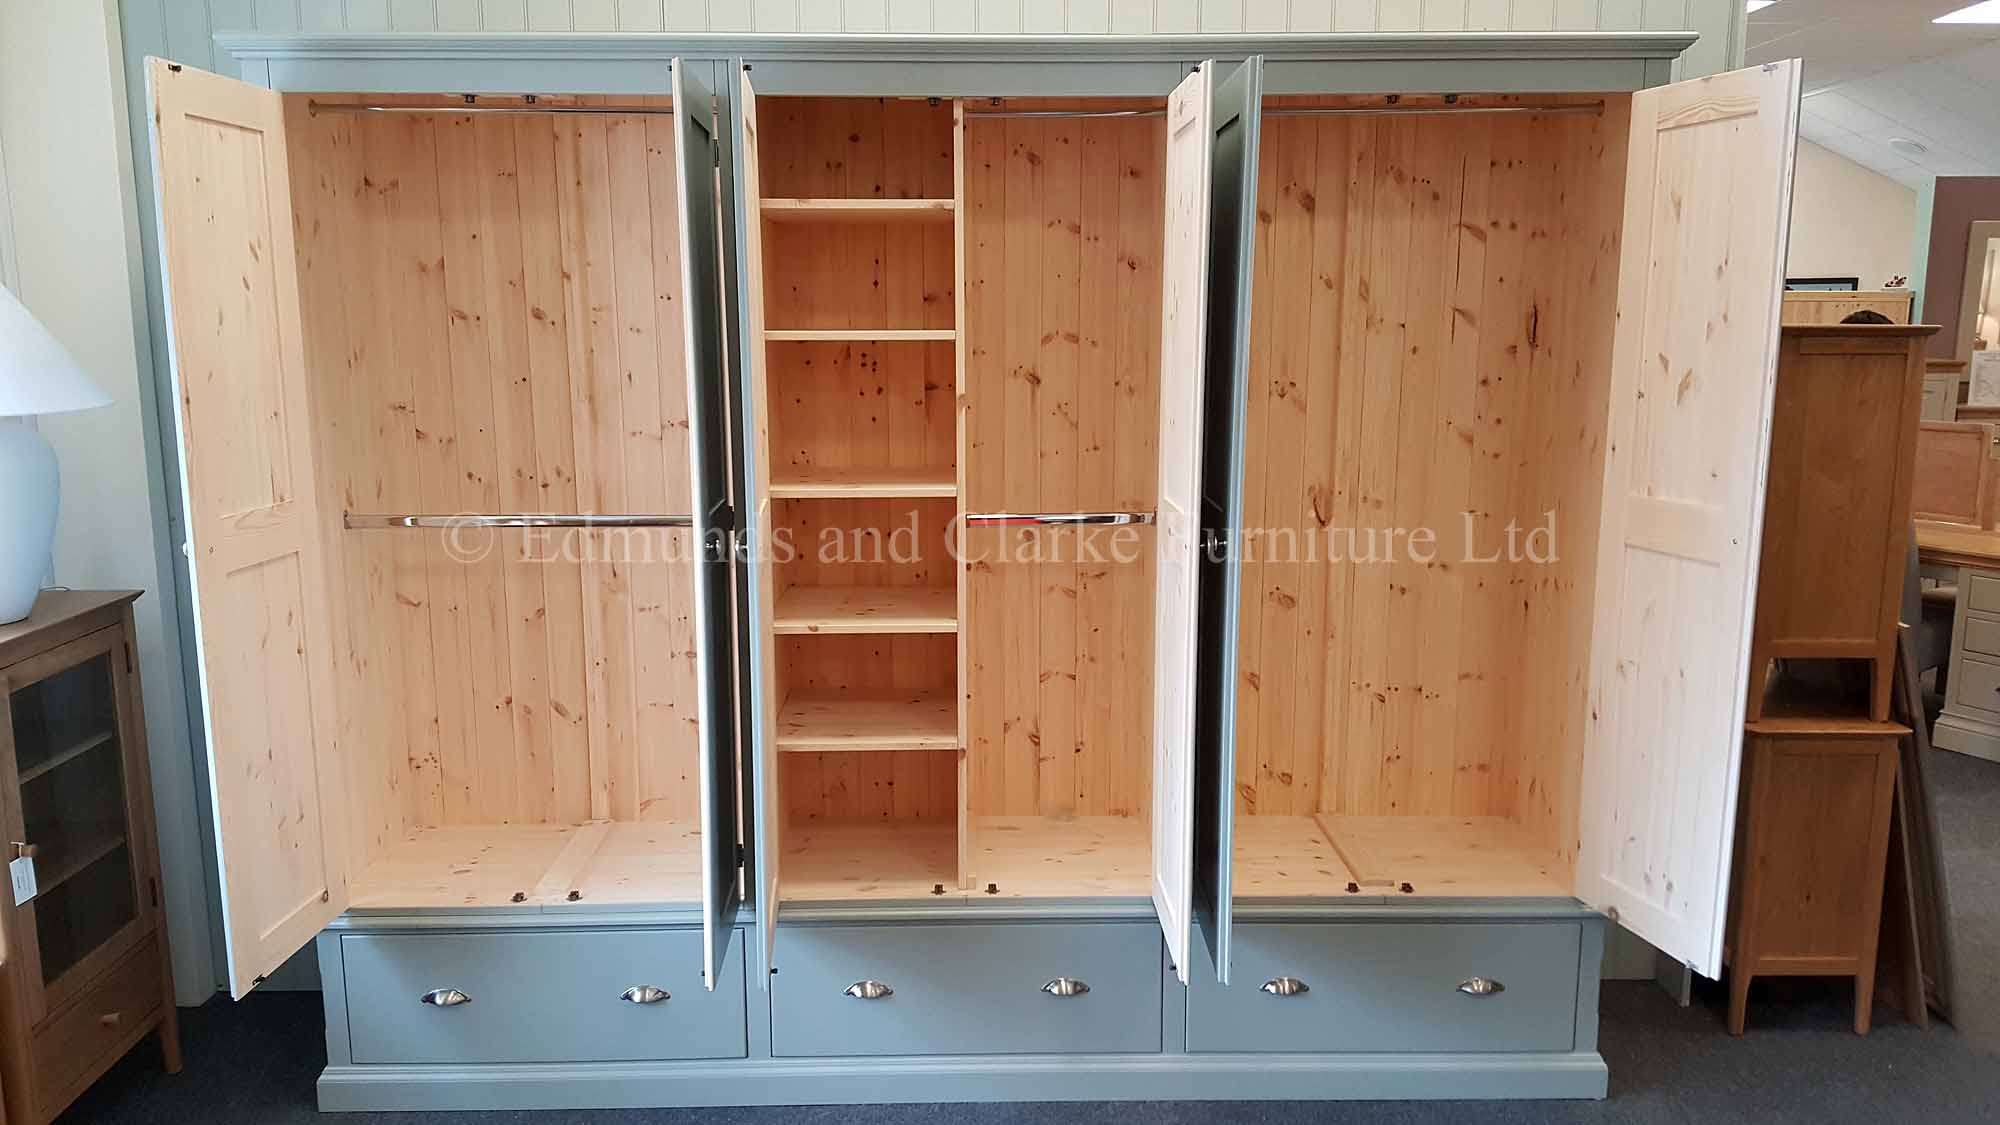 Bespoke made to measure wardrobe 6 doors with 3 large deep drawers below